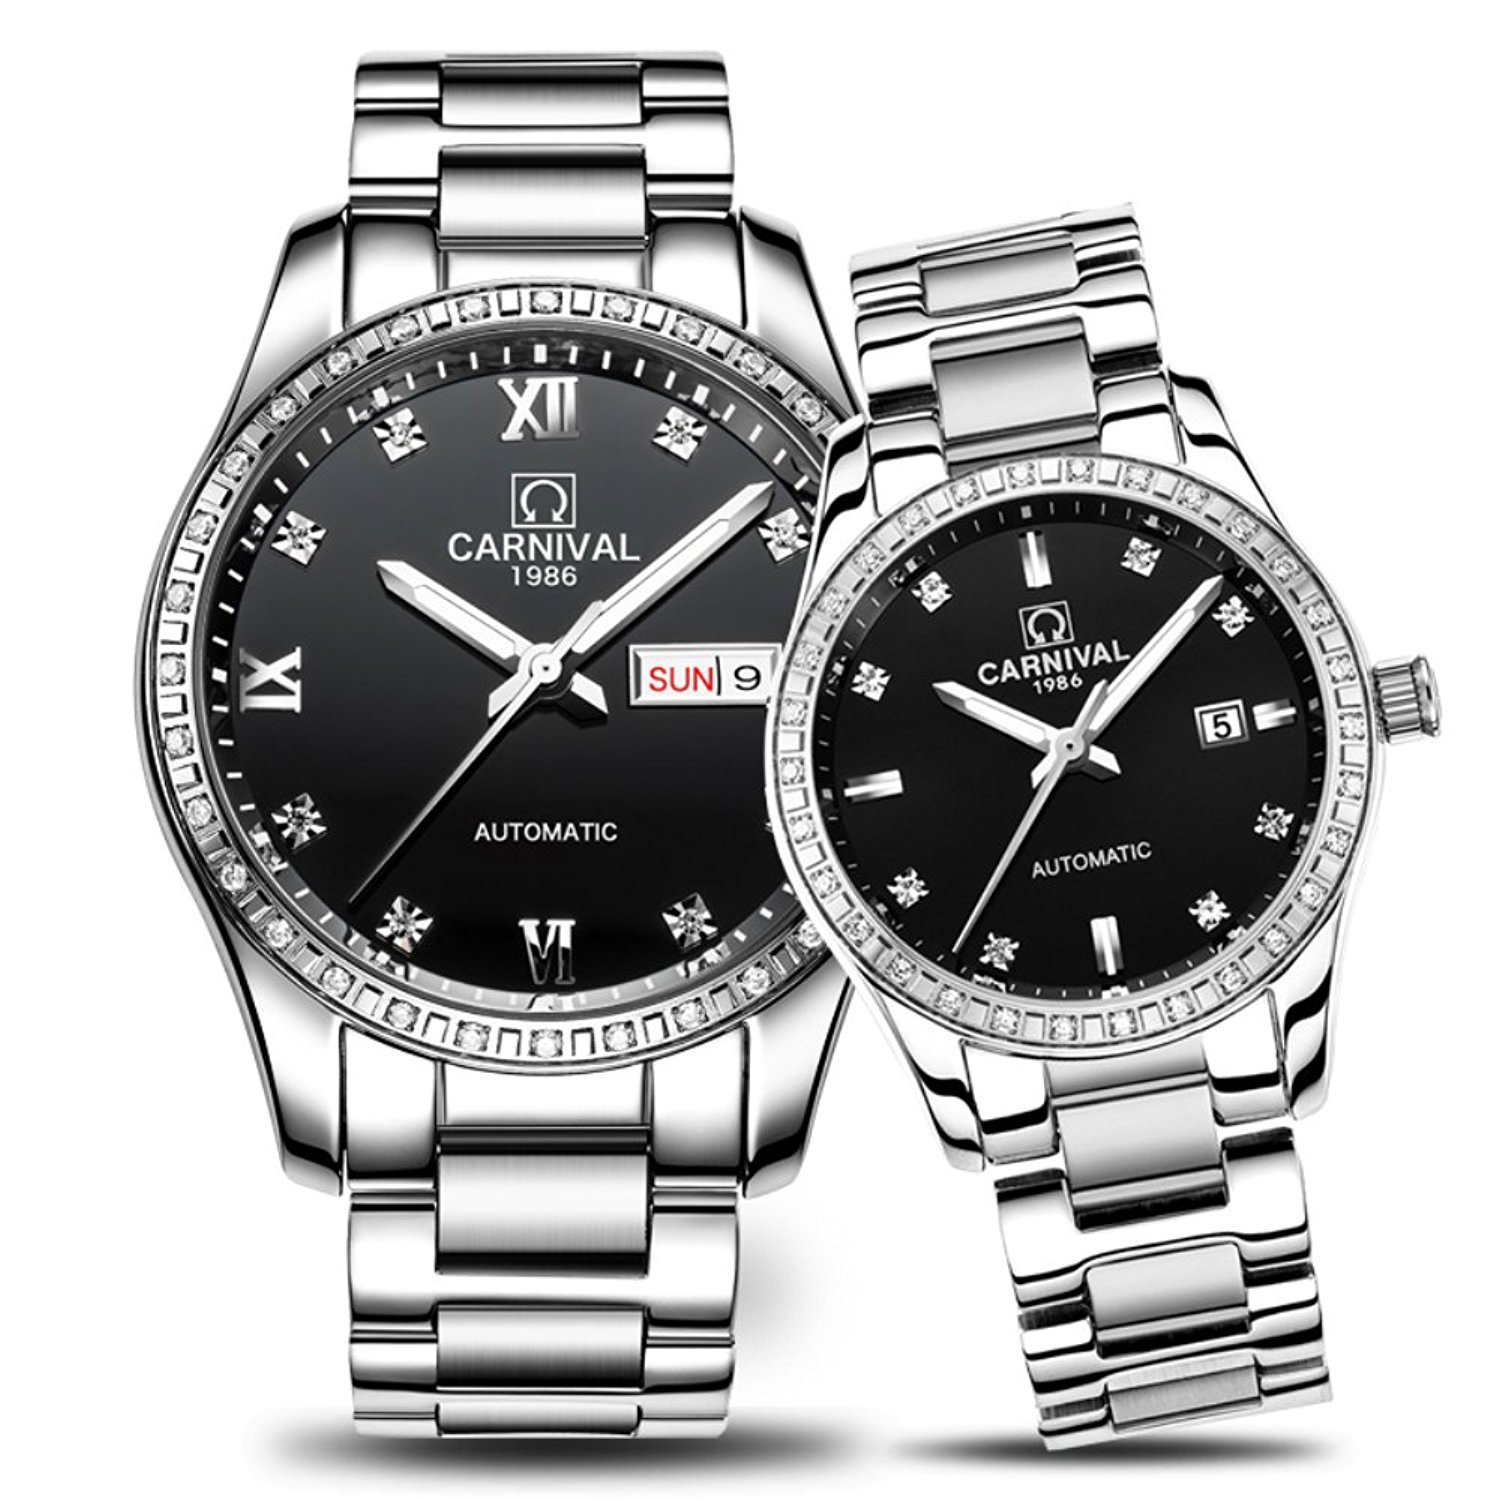 Couple Automatic Mechanical Watch Men and Women Sapphire Glass Watches Two Tone for Her or His Gift Set 2 (Silver Black)